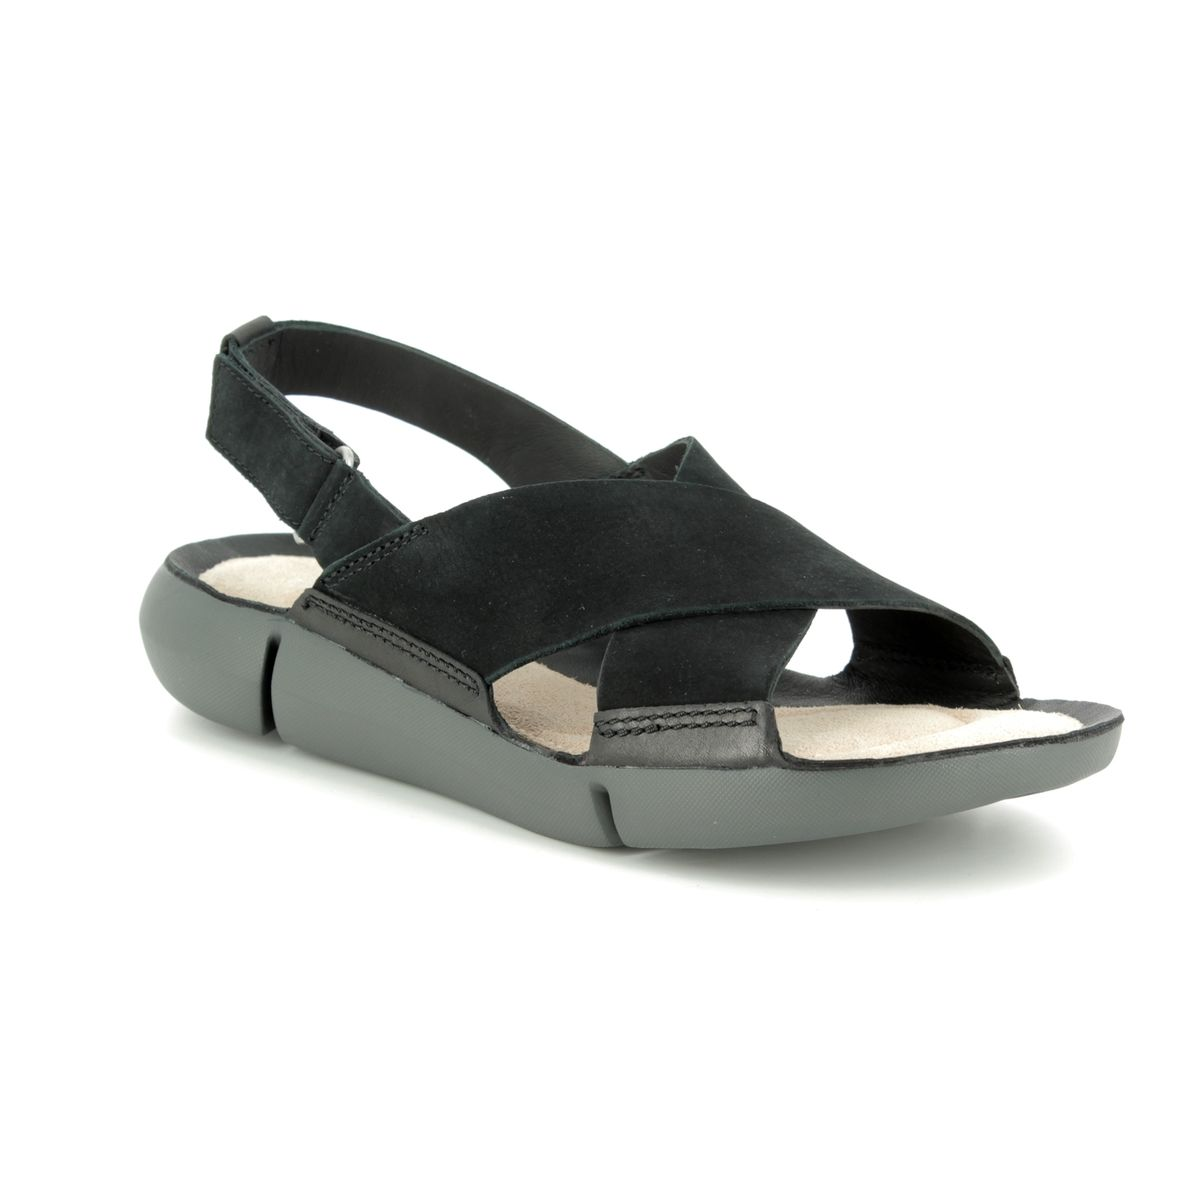 Clarks Women's Tri Chloe Sling Back Sandals